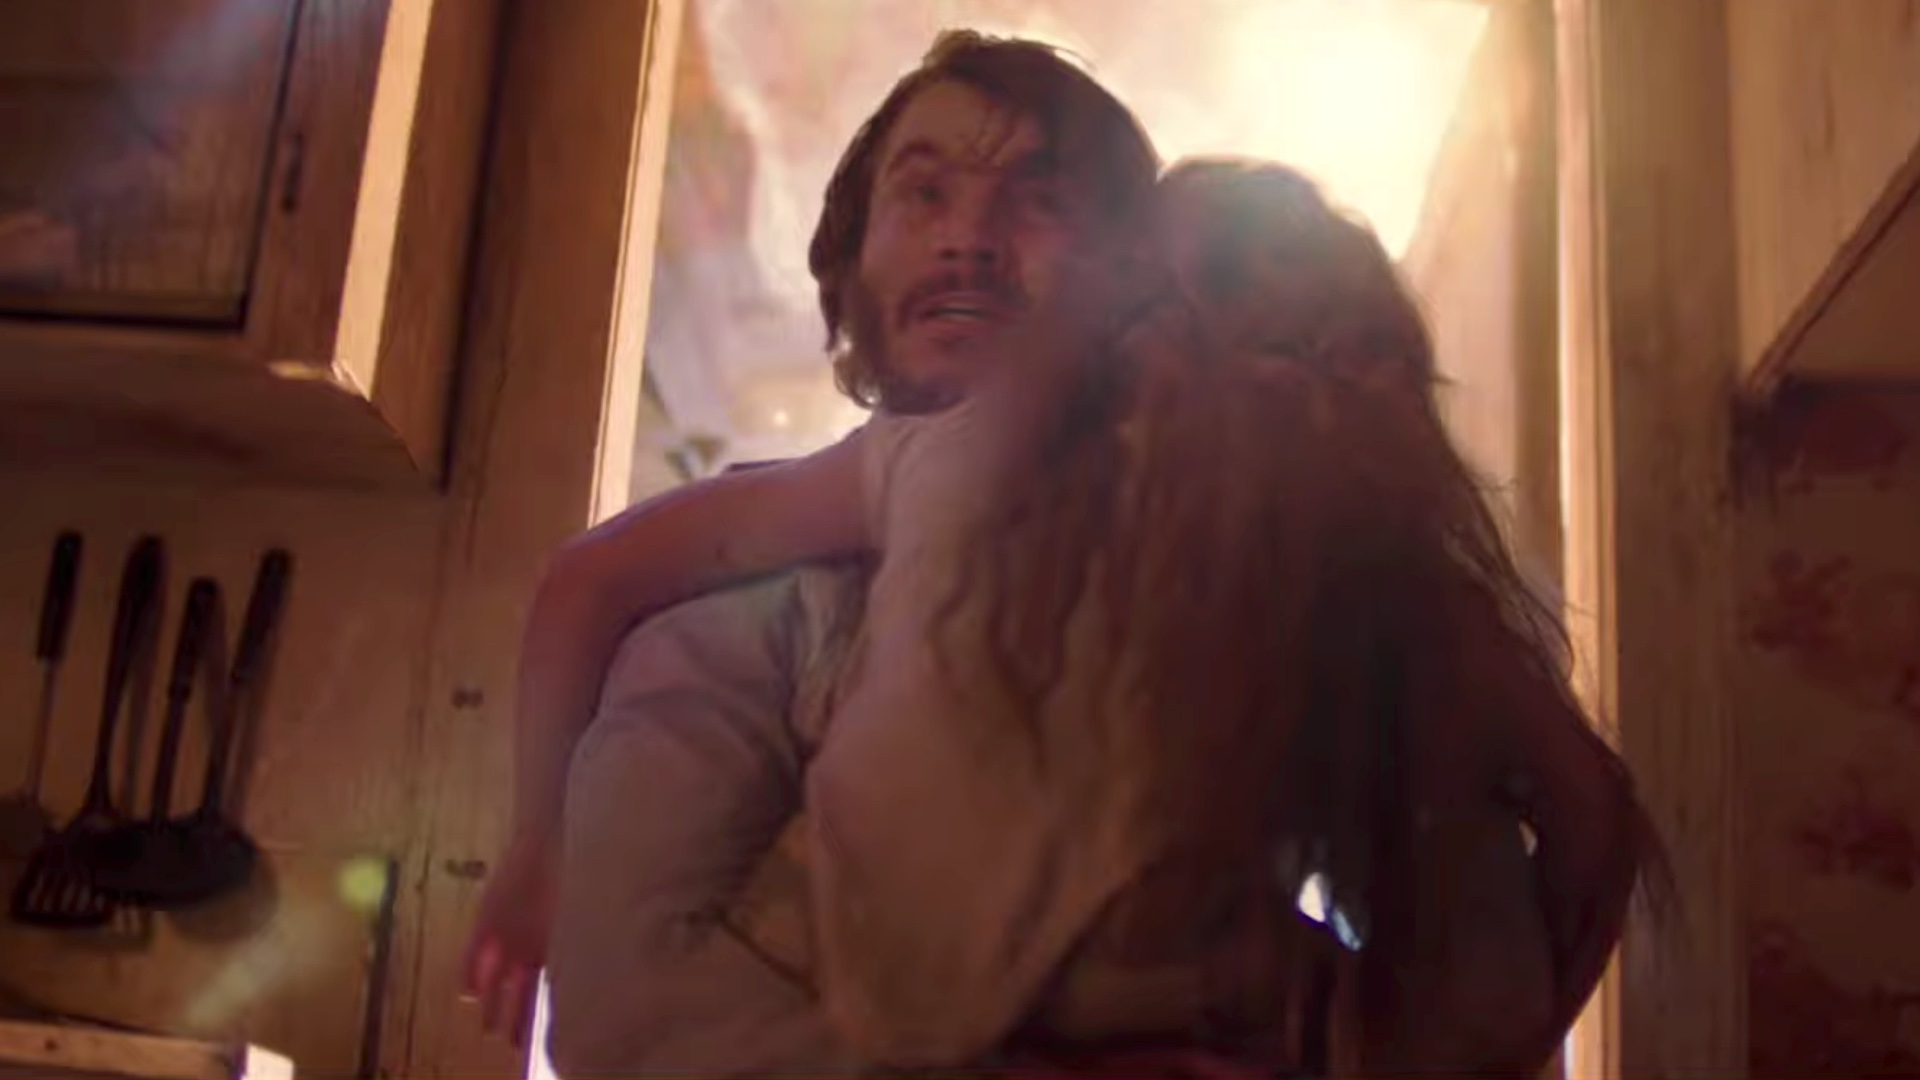 unsettling-new-trailer-for-the-sci-fi-film-freaks-with-emile-hirsch-and-bruce-dern-social.jpg